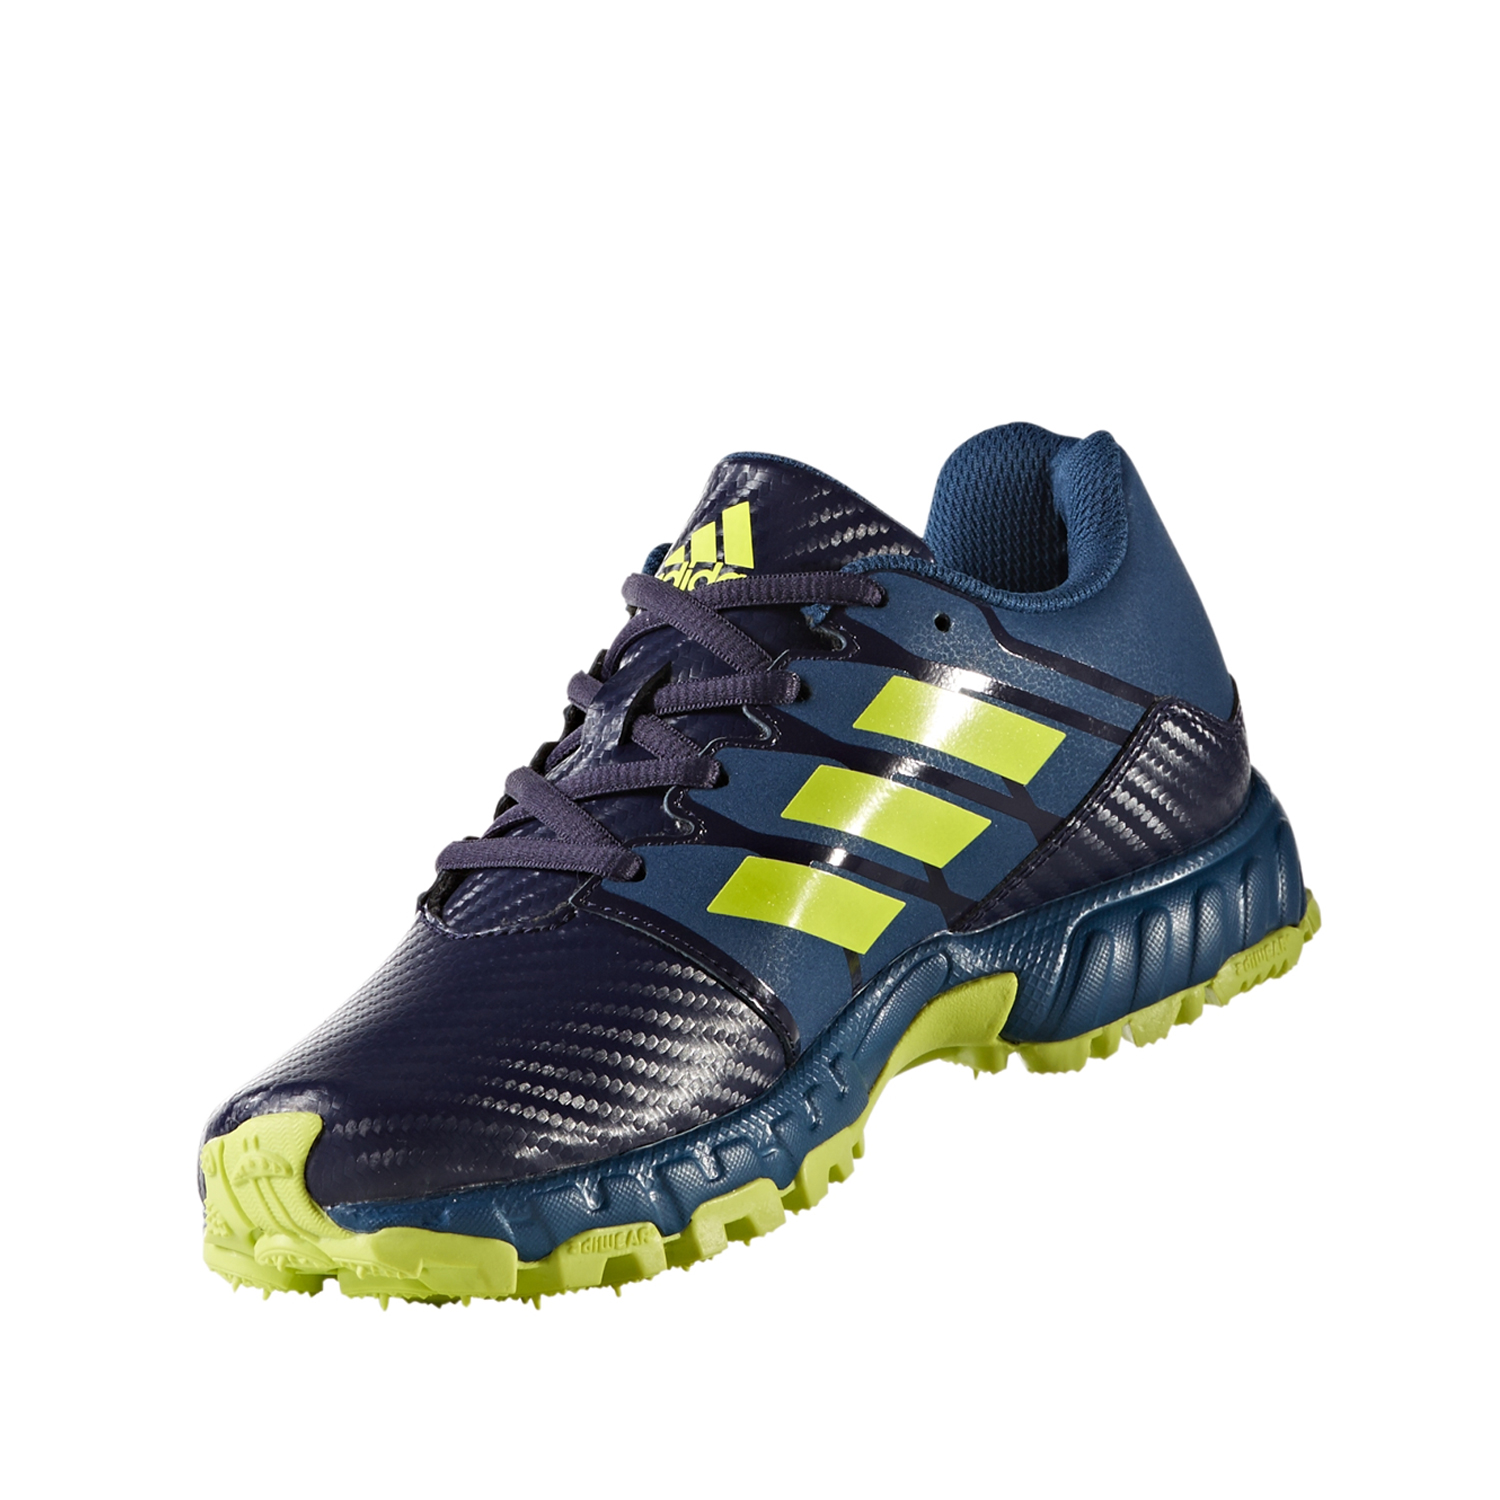 separation shoes 10d1d 38f85 Adidas Hockey Lux Junior Shoes- Blue Yellow